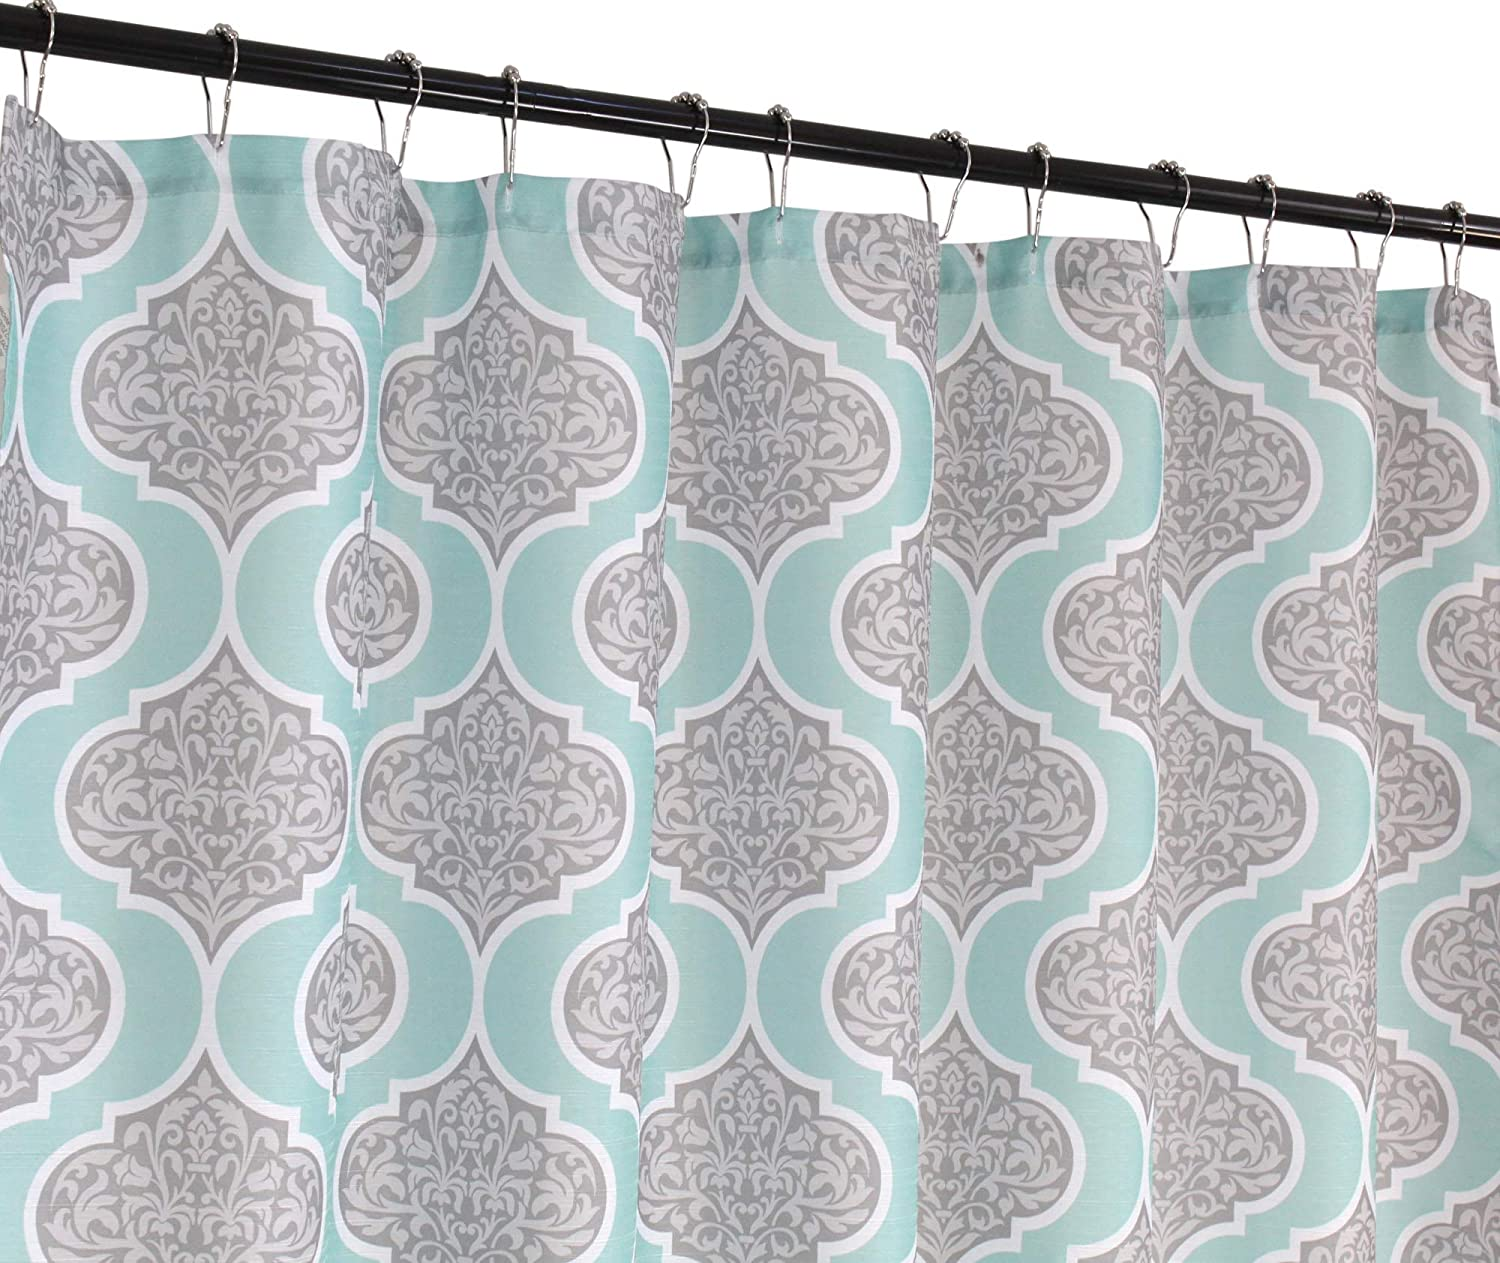 CHD Home Damask Fabric Shower Curtain: Grey Floral Medallion with Turquoise Border (Sonia)